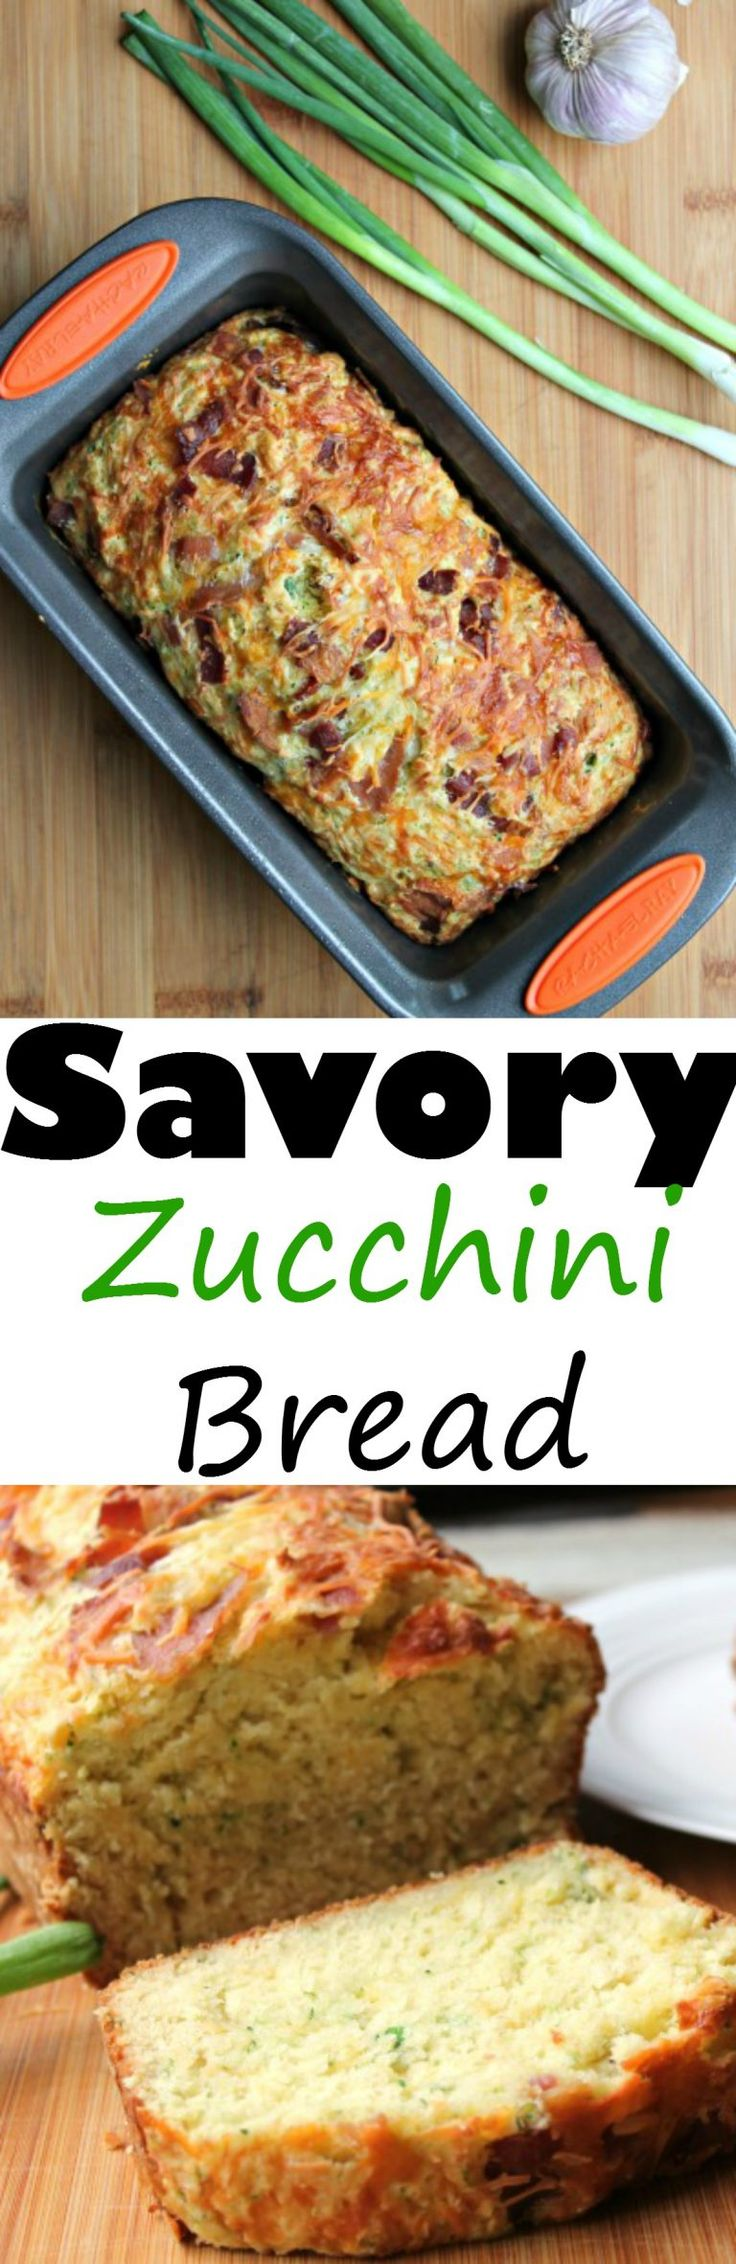 Savory Zucchini Bread (w/ bacon, garlic & cheese)